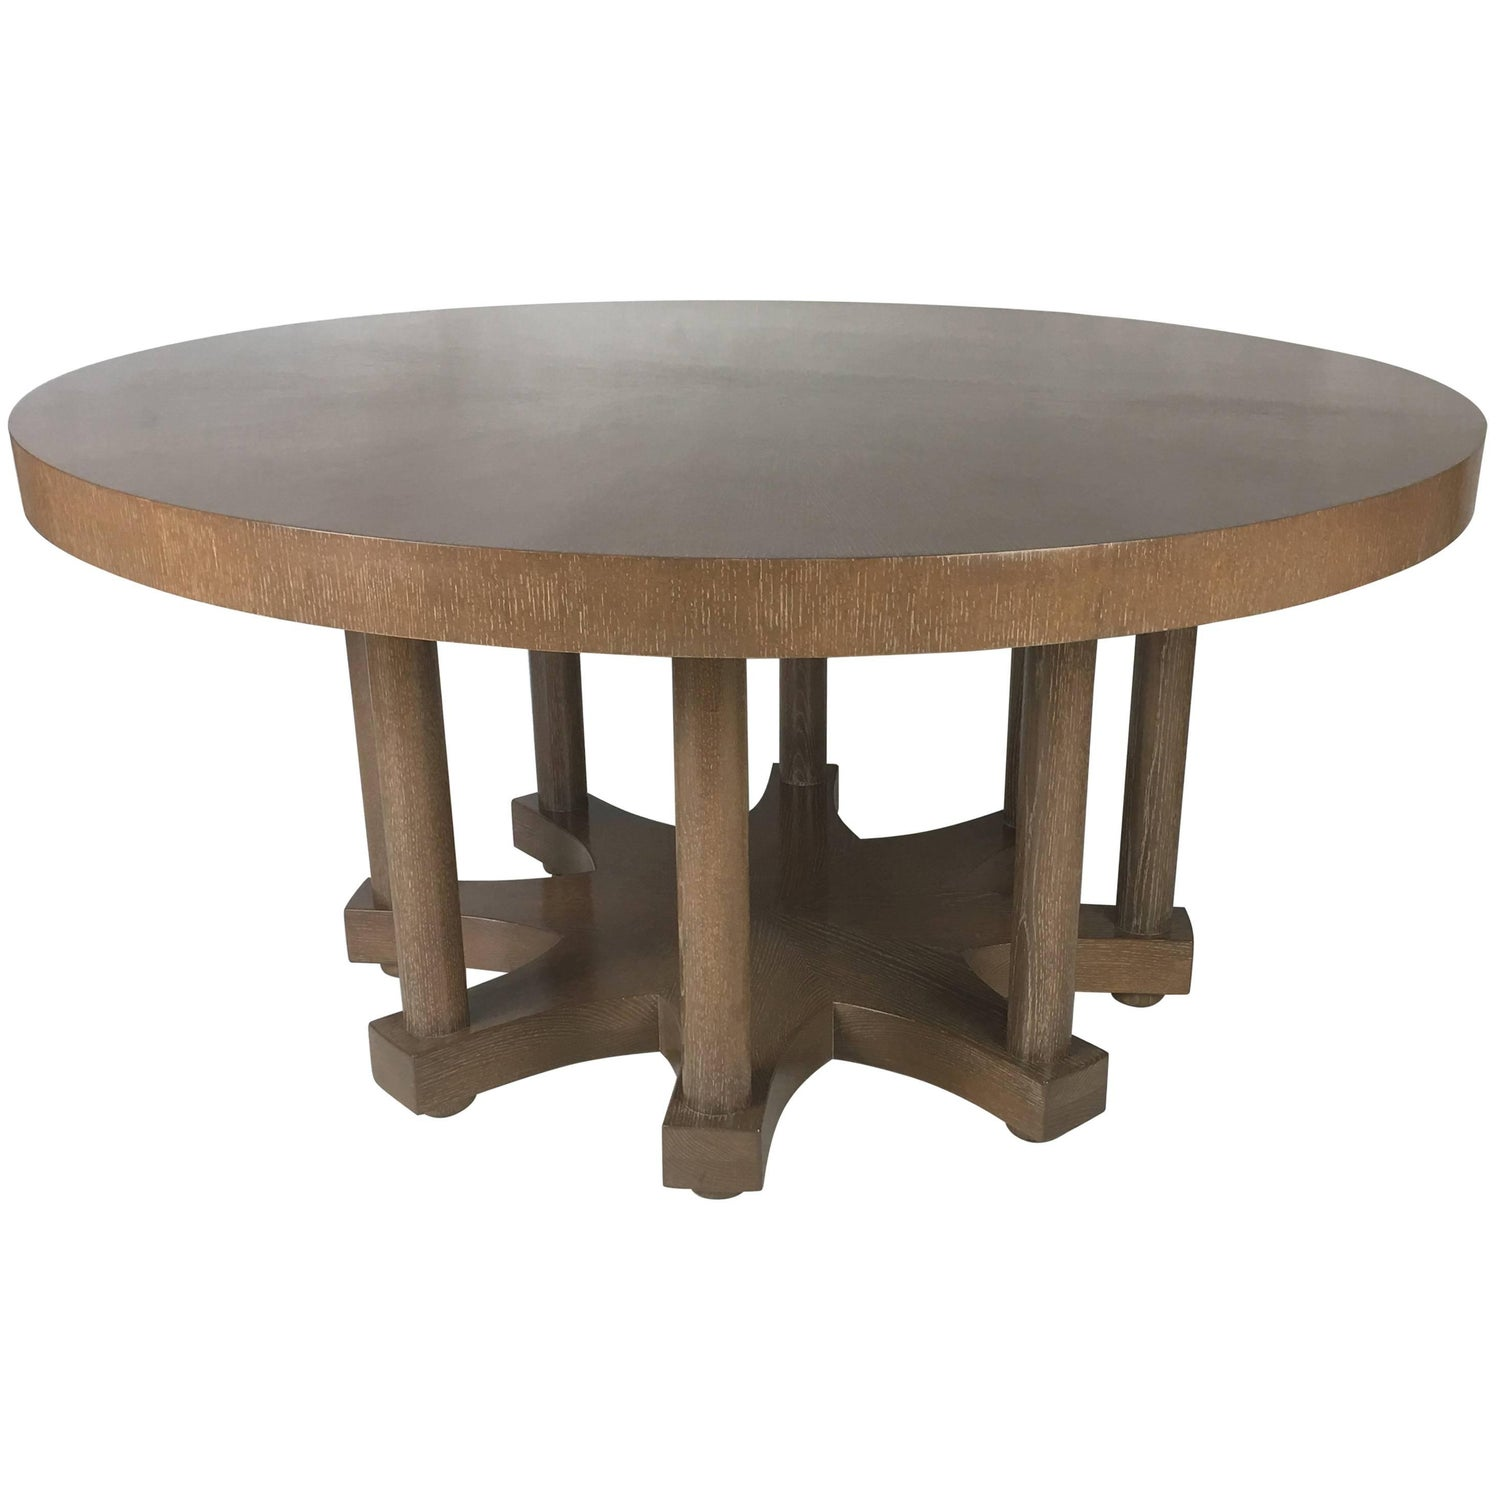 Michael taylor cyprus tree trunk dining table at 1stdibs - Michael Taylor Cyprus Tree Trunk Dining Table At 1stdibs 49